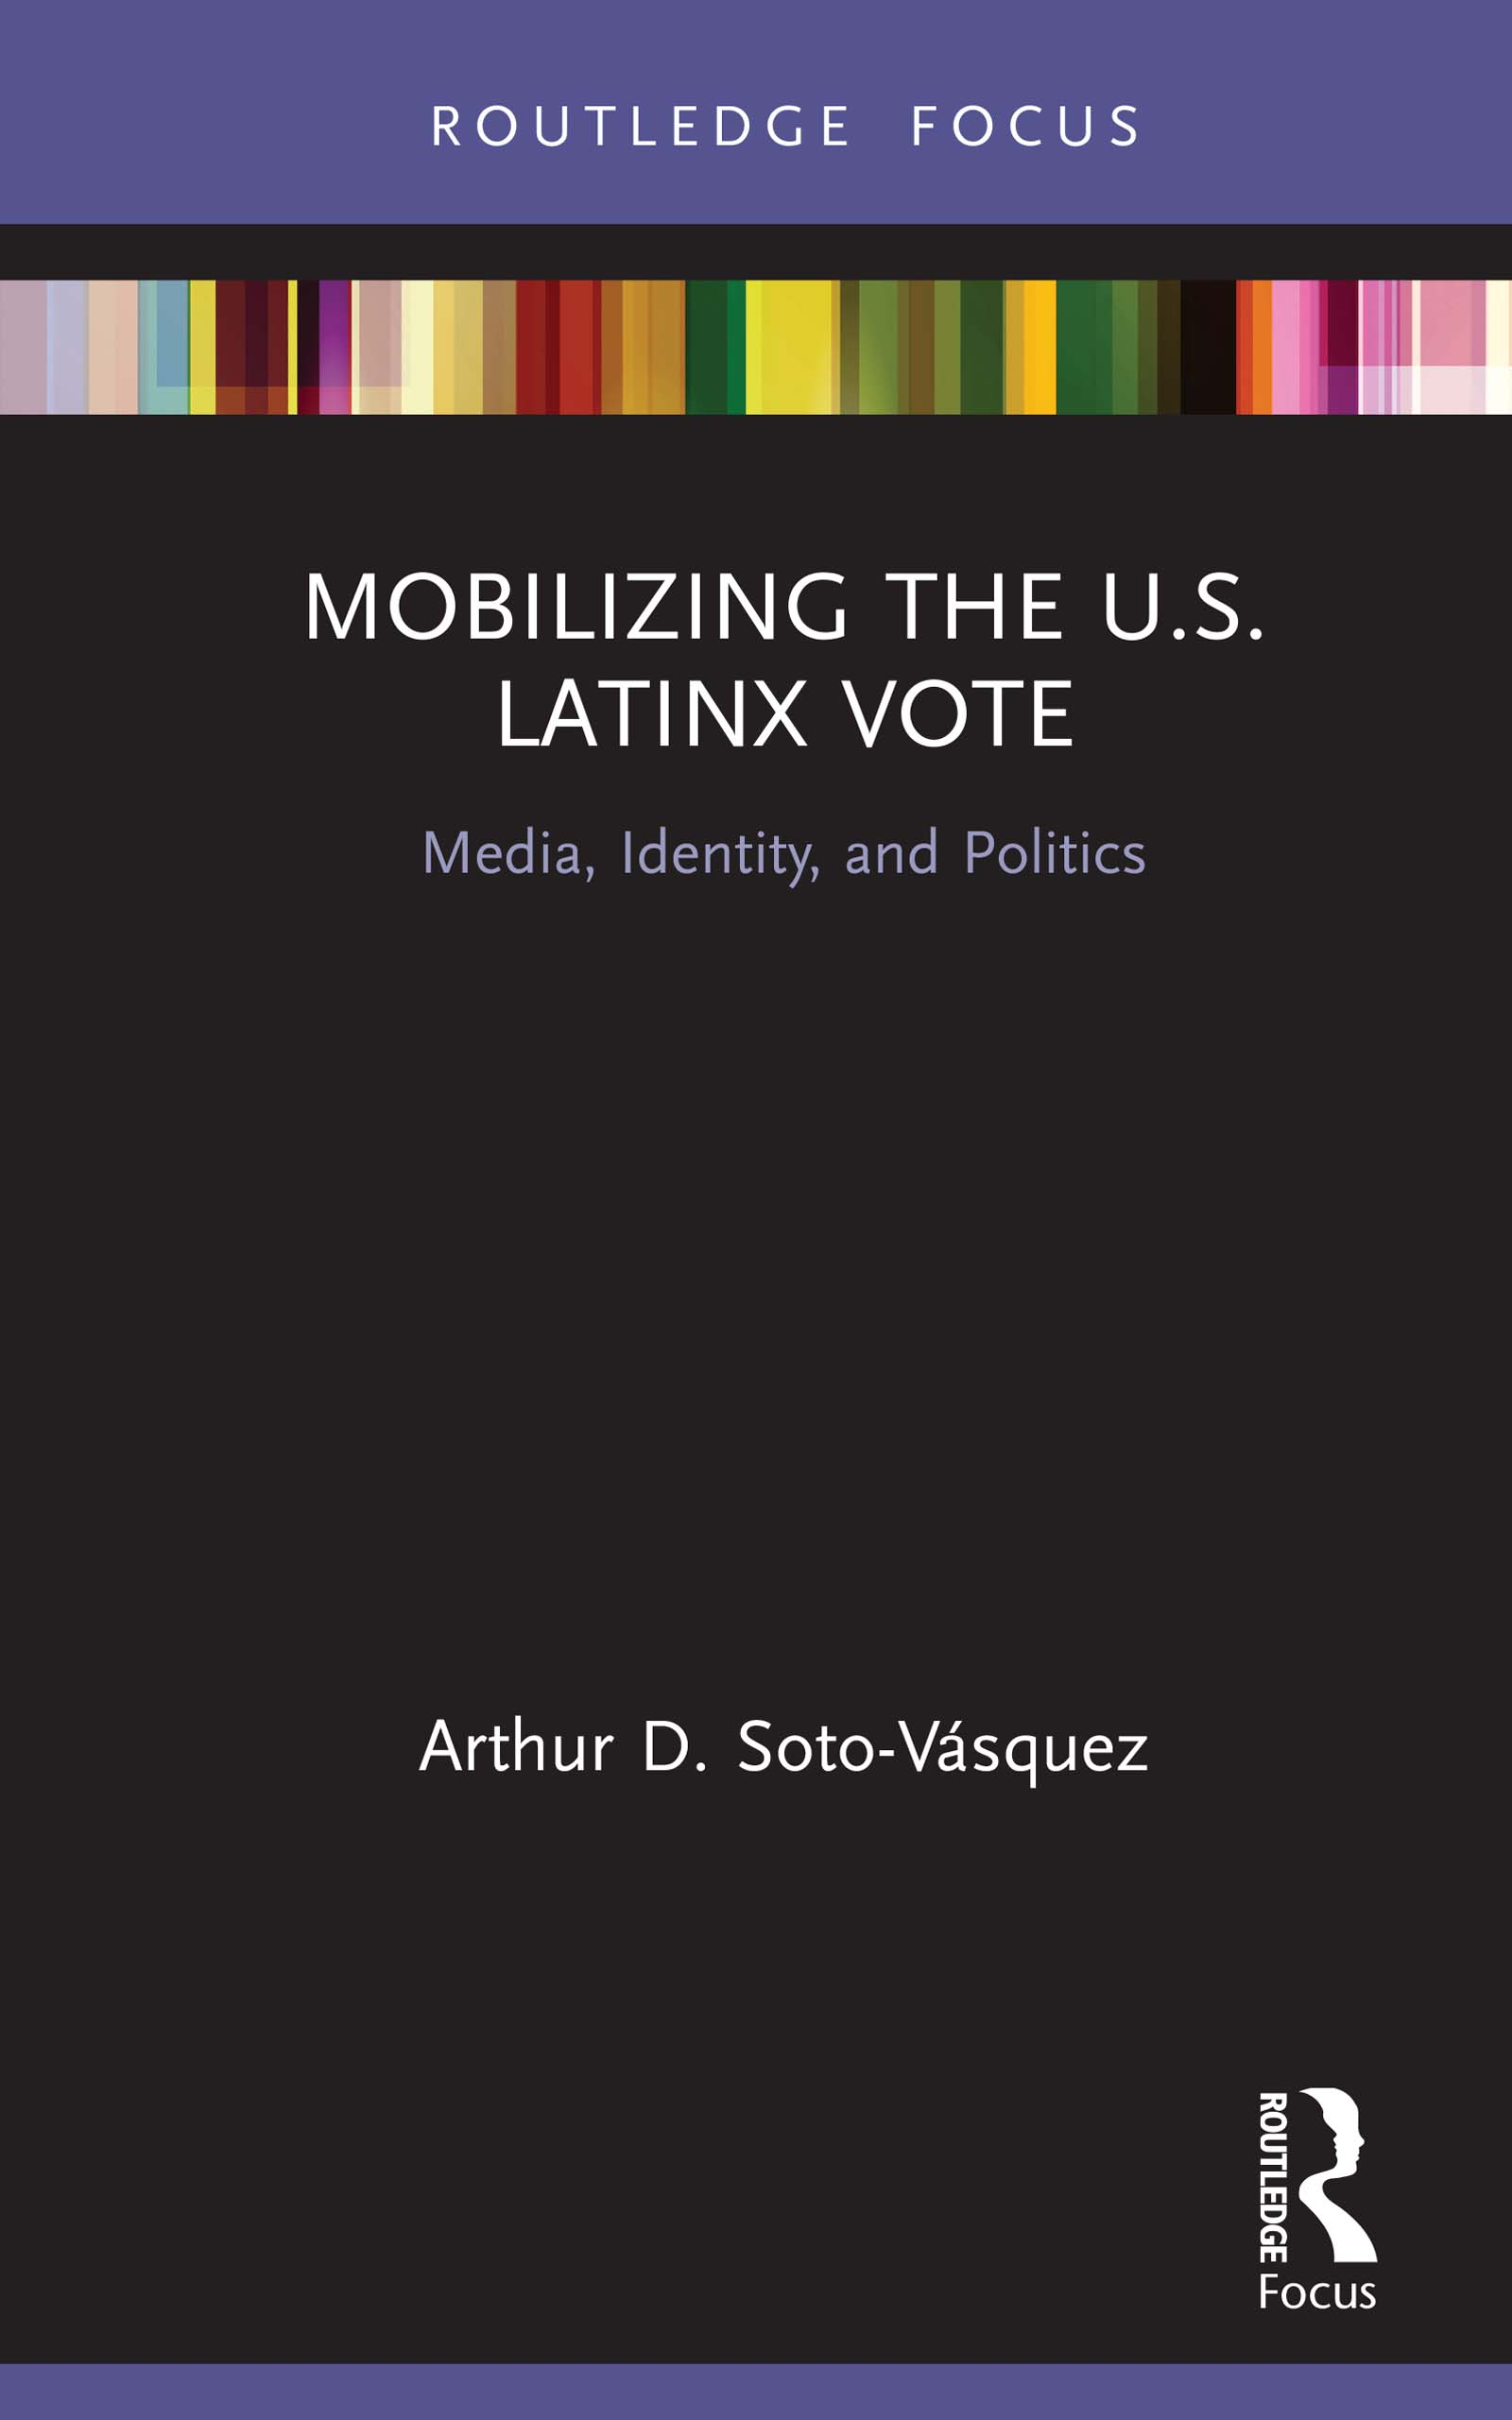 Mobilizing the U.S. Latinx Vote: Media, Identity, and Politics book cover